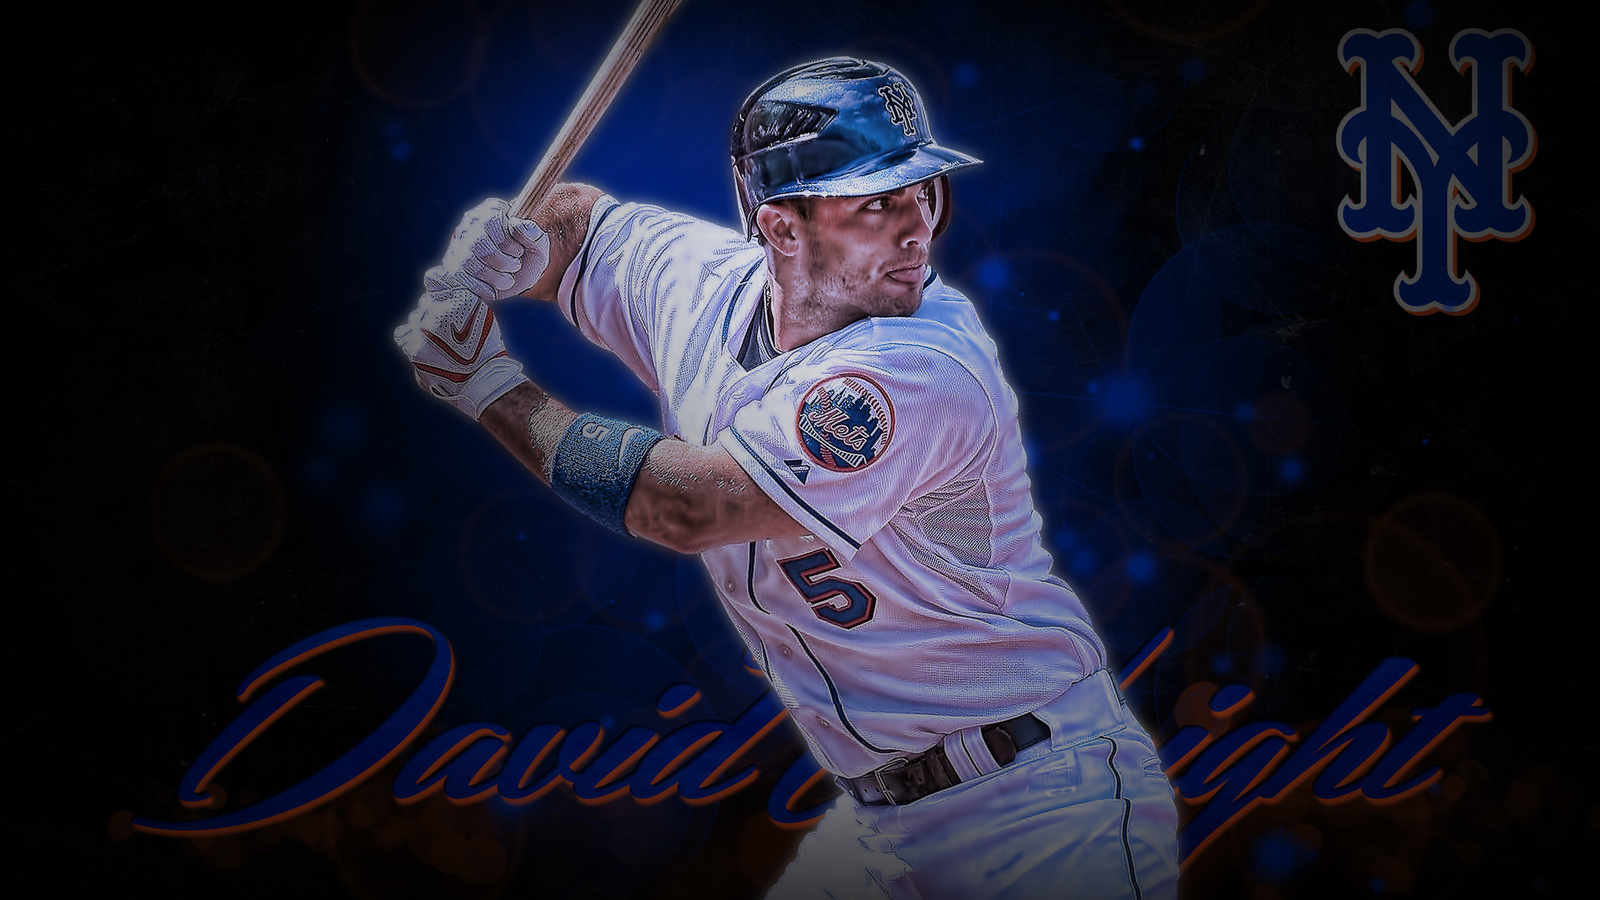 David Wright Wallpaper Page 15 Images 1600x900